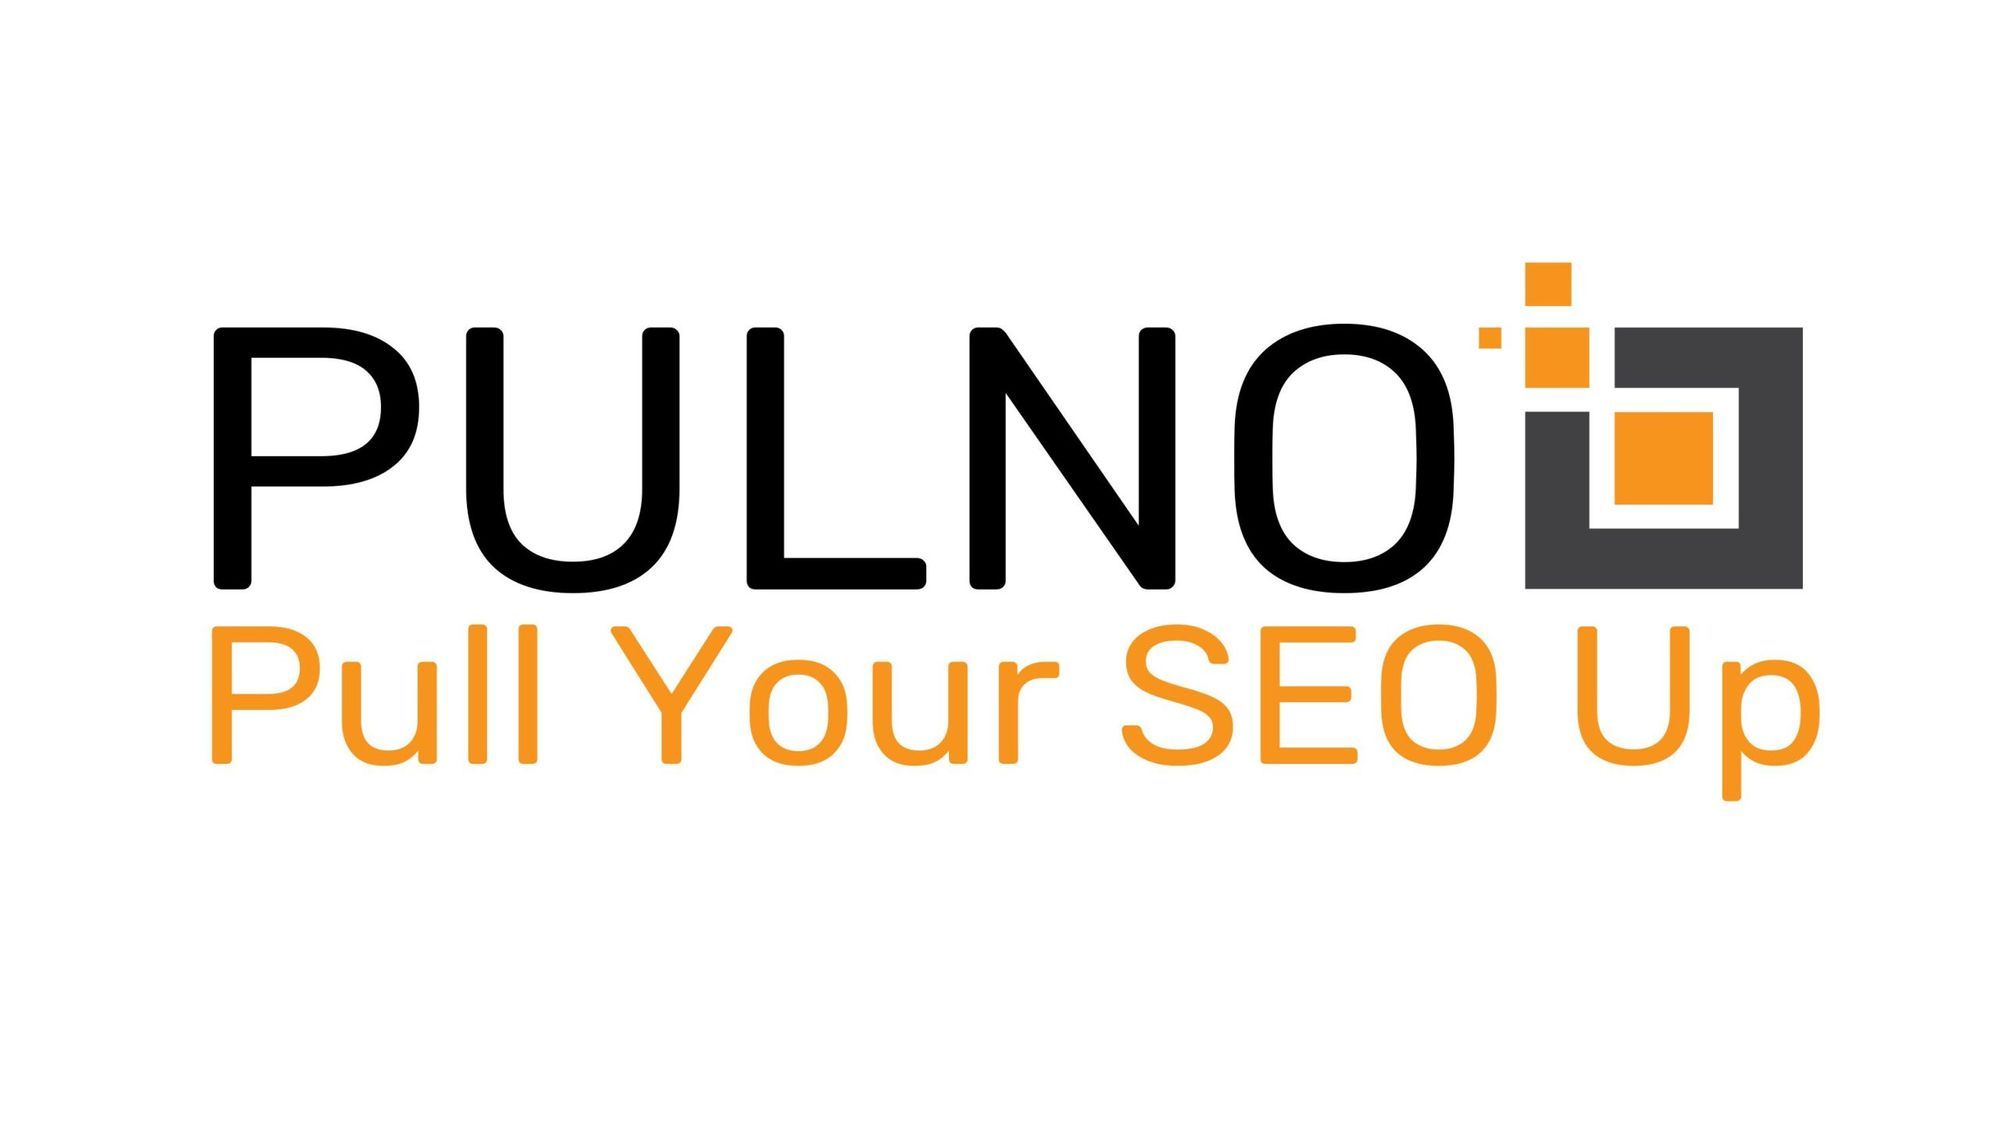 Pulno - Ace the SEO Game with This Website Audit tool!